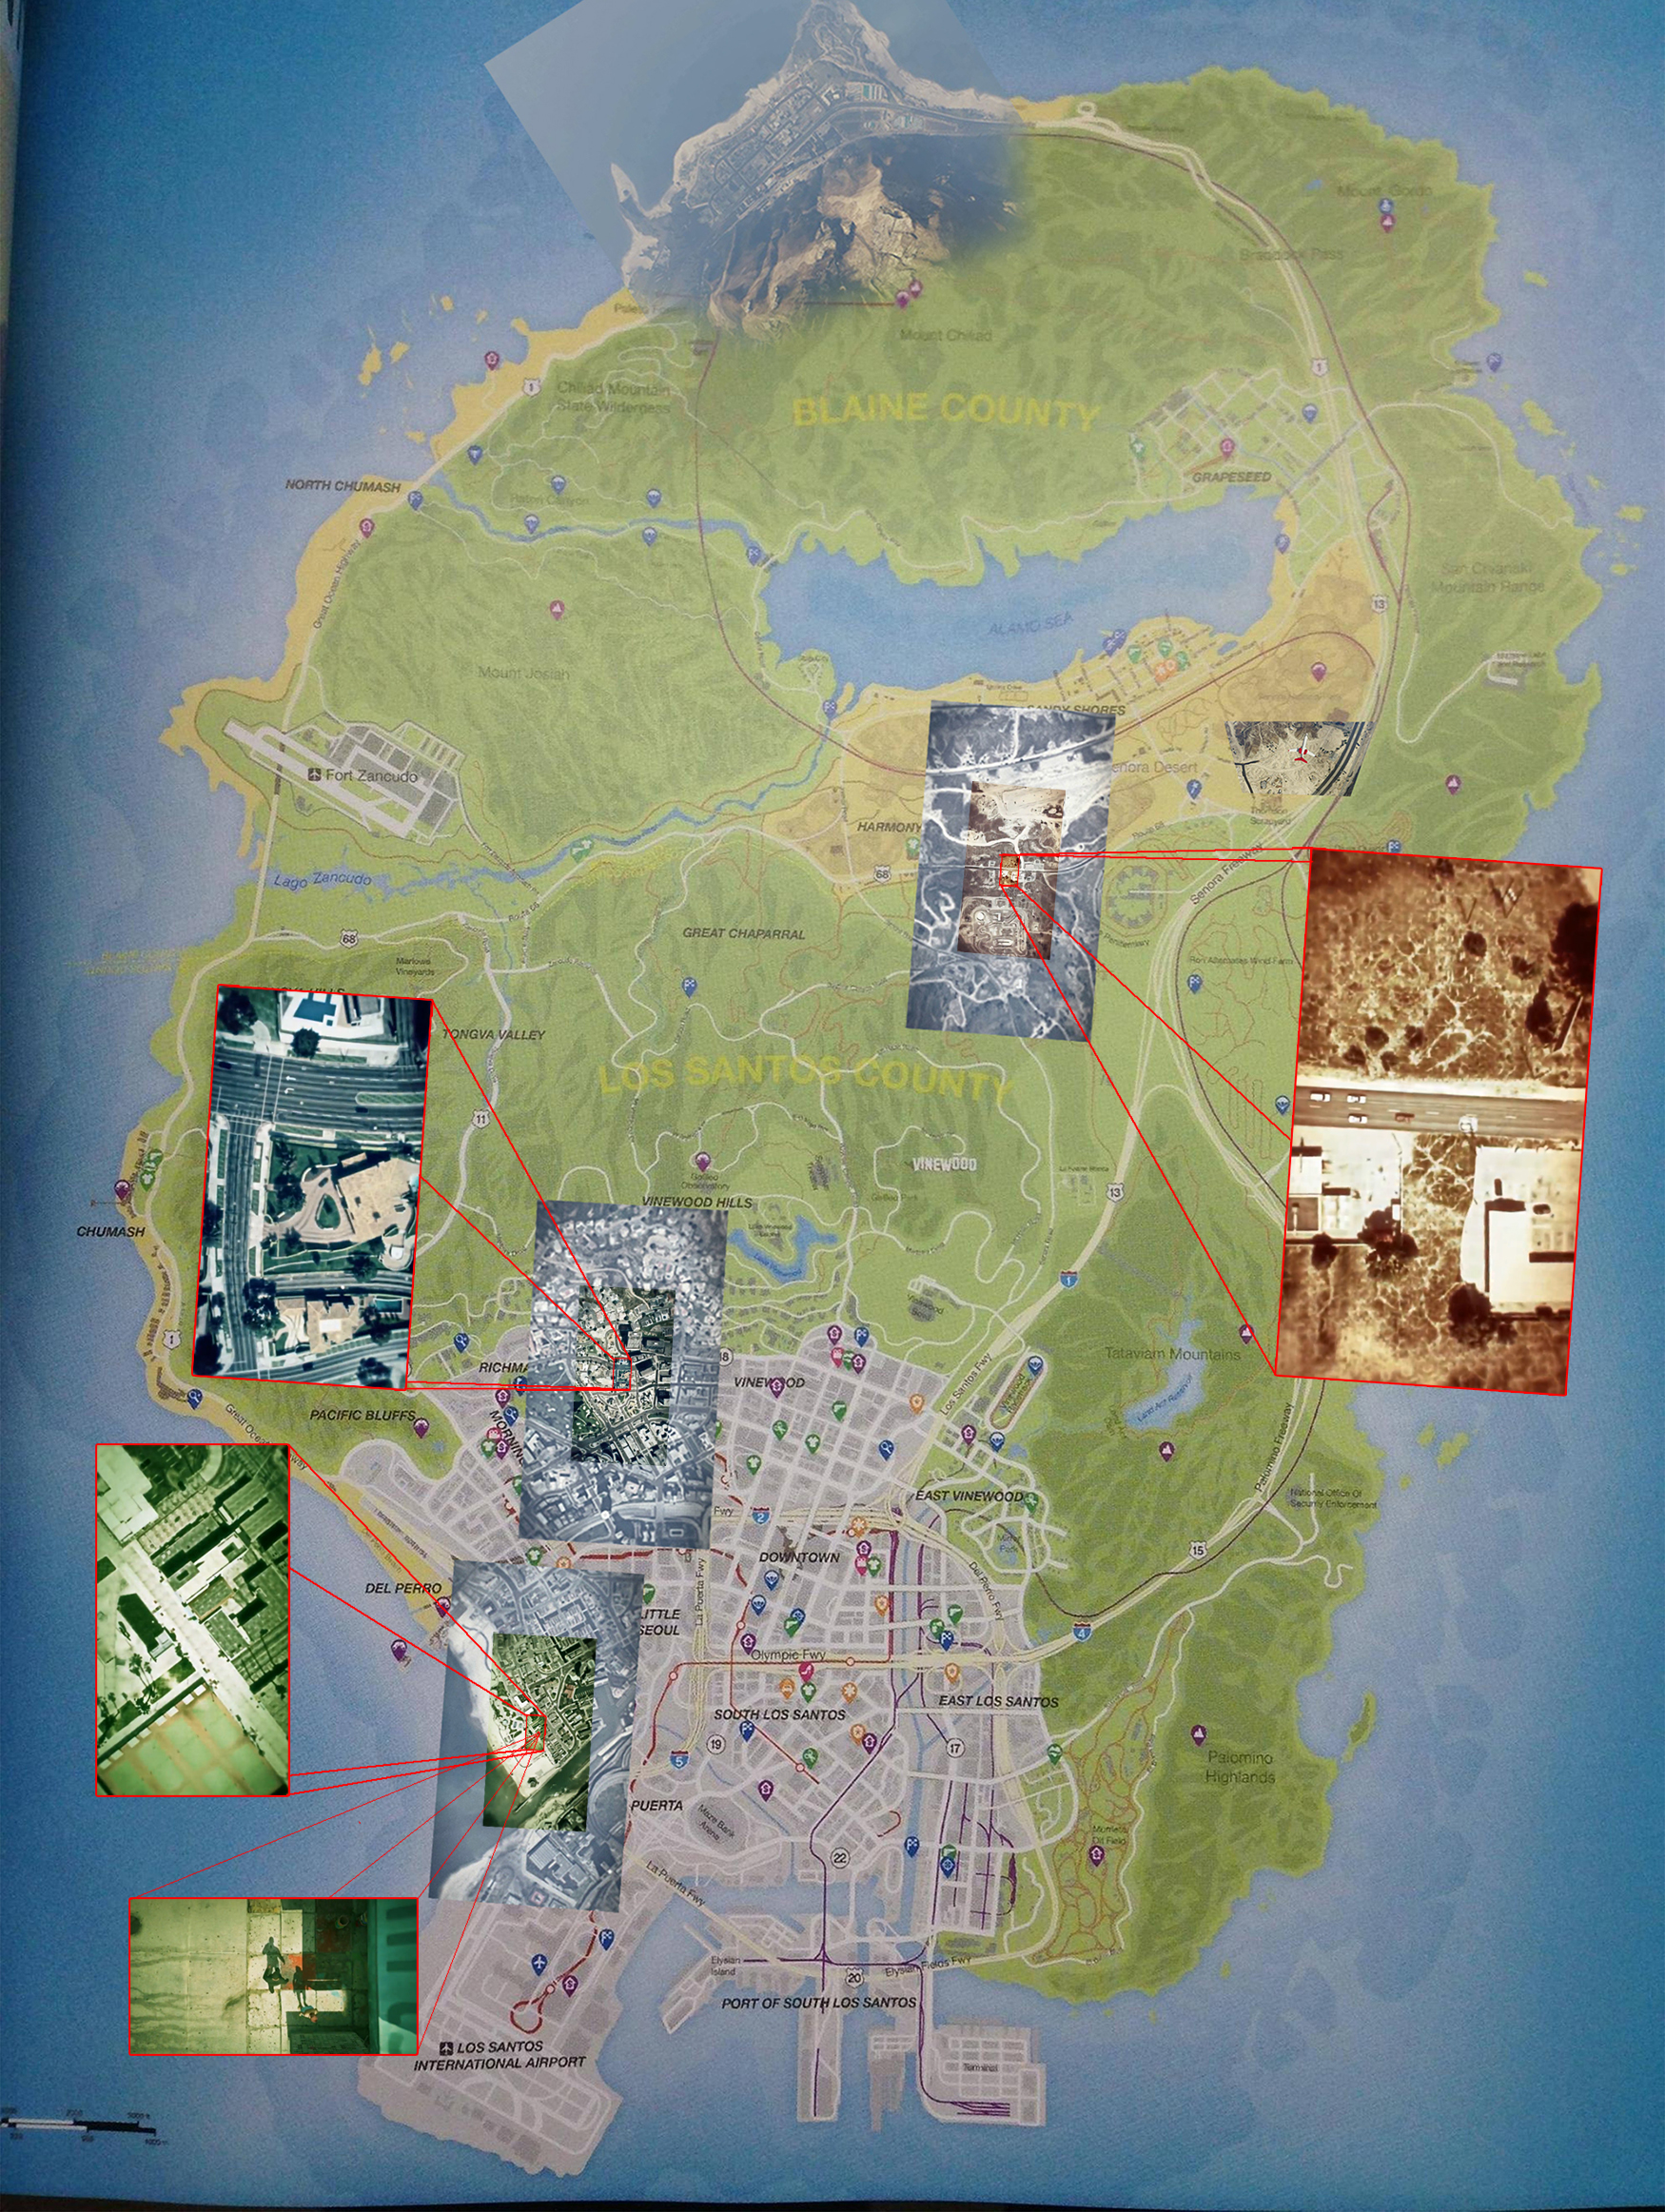 Grand Theft Auto V leaked map